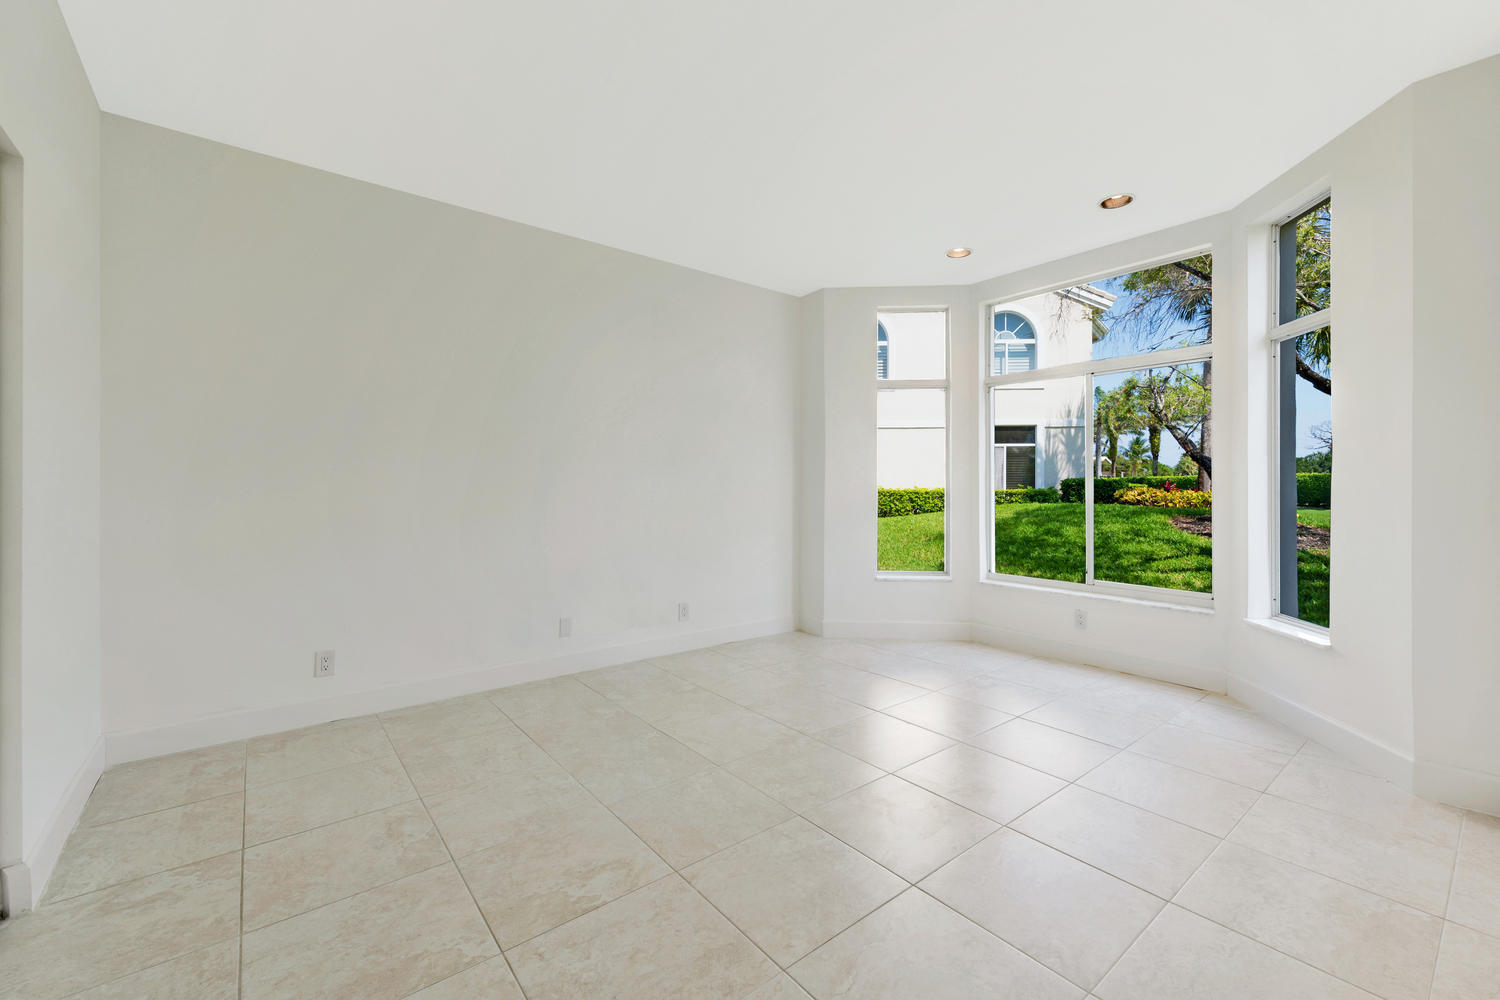 330 Spyglass Way, Jupiter, Florida 33477, 2 Bedrooms Bedrooms, ,2 BathroomsBathrooms,A,Condominium,Spyglass,RX-10513122